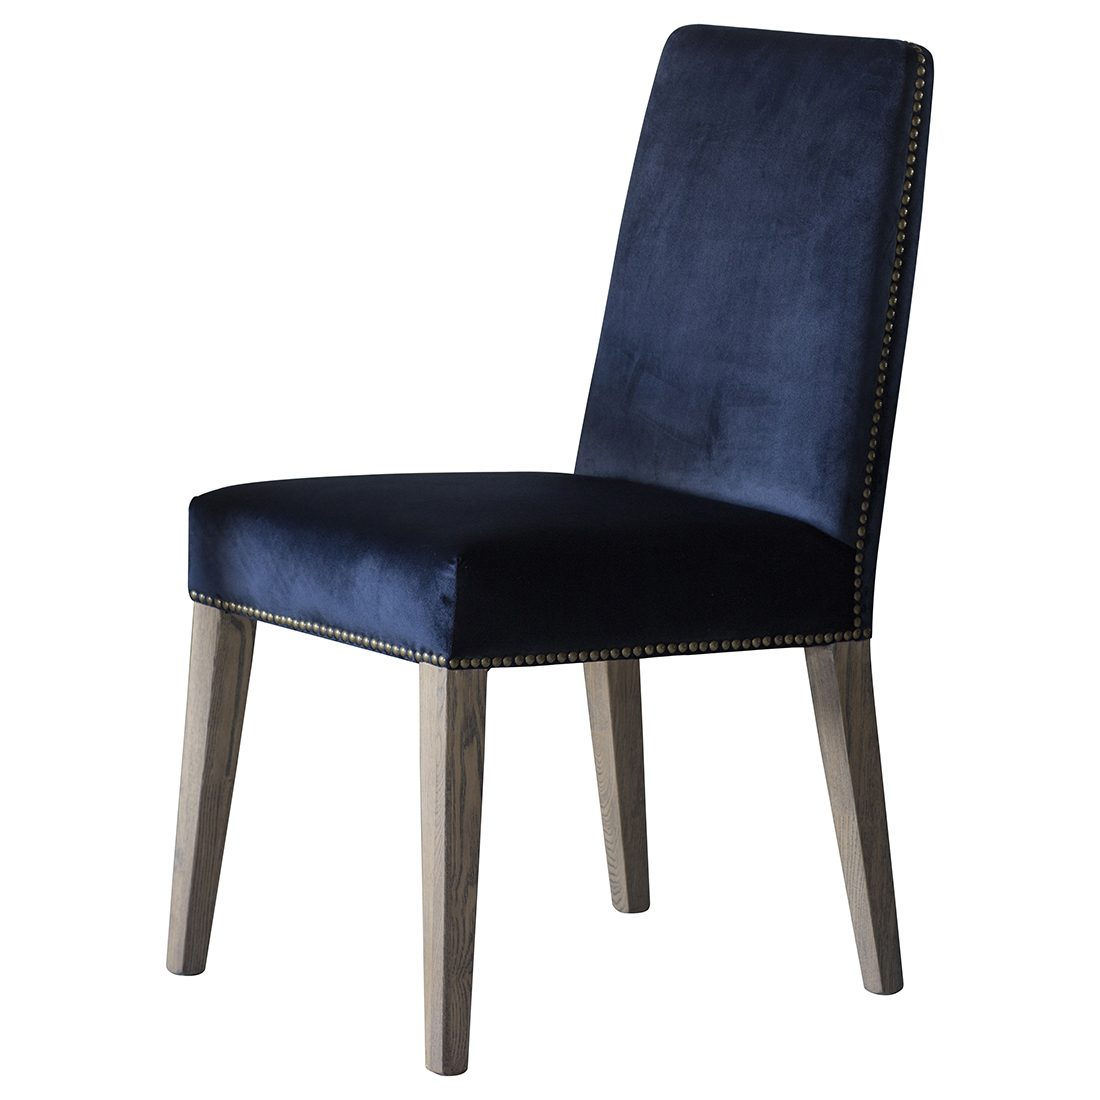 Studded Dining Chairs Midnight Blue Velvet Studded Dining Chair Set Of Two